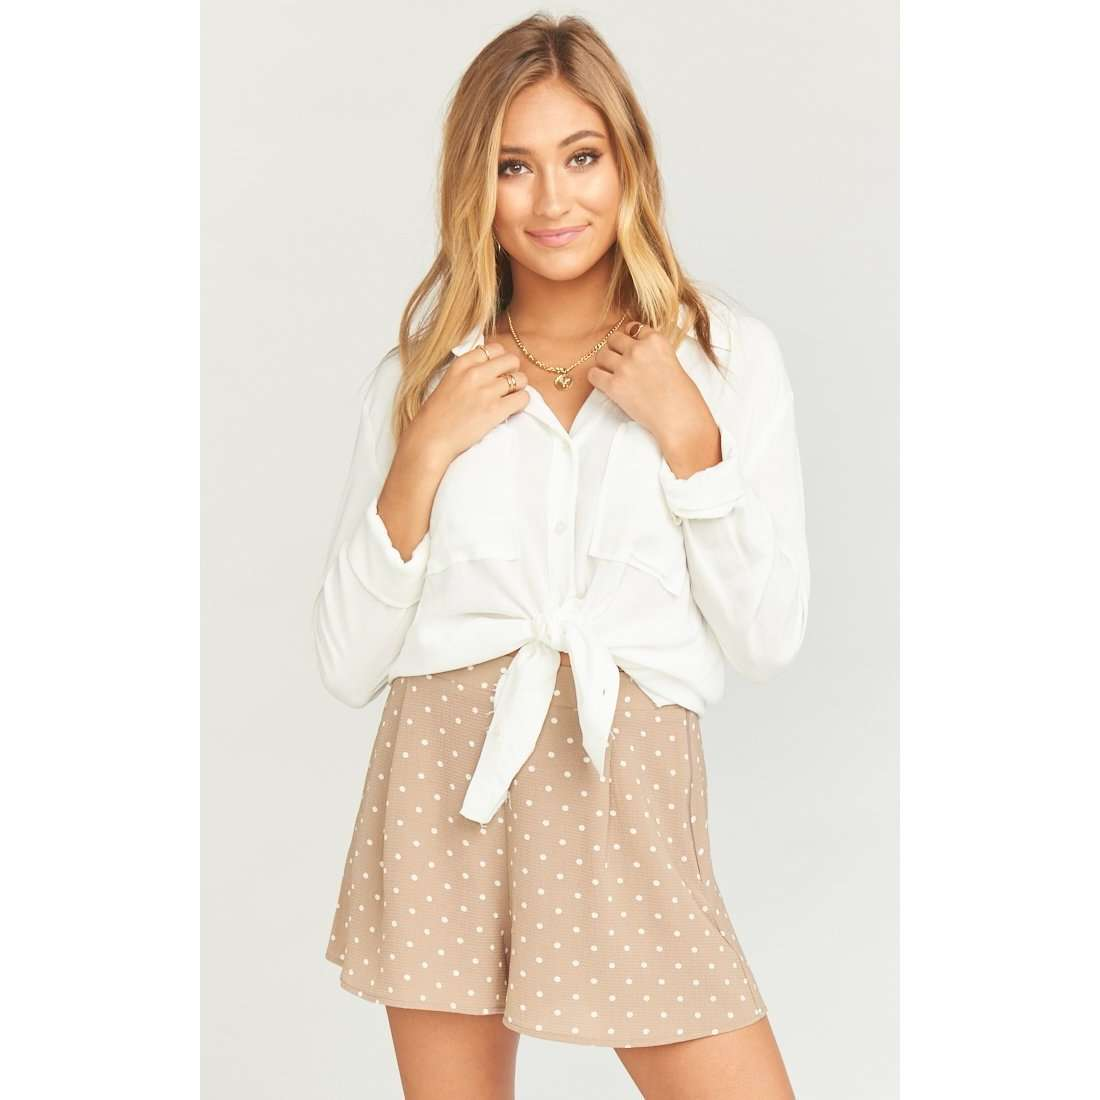 8.28 Boutique:Show Me Your Mumu,Show Me Your Mumu Dotcha Polk Dot Beige Miss Me Shorts,Bottoms